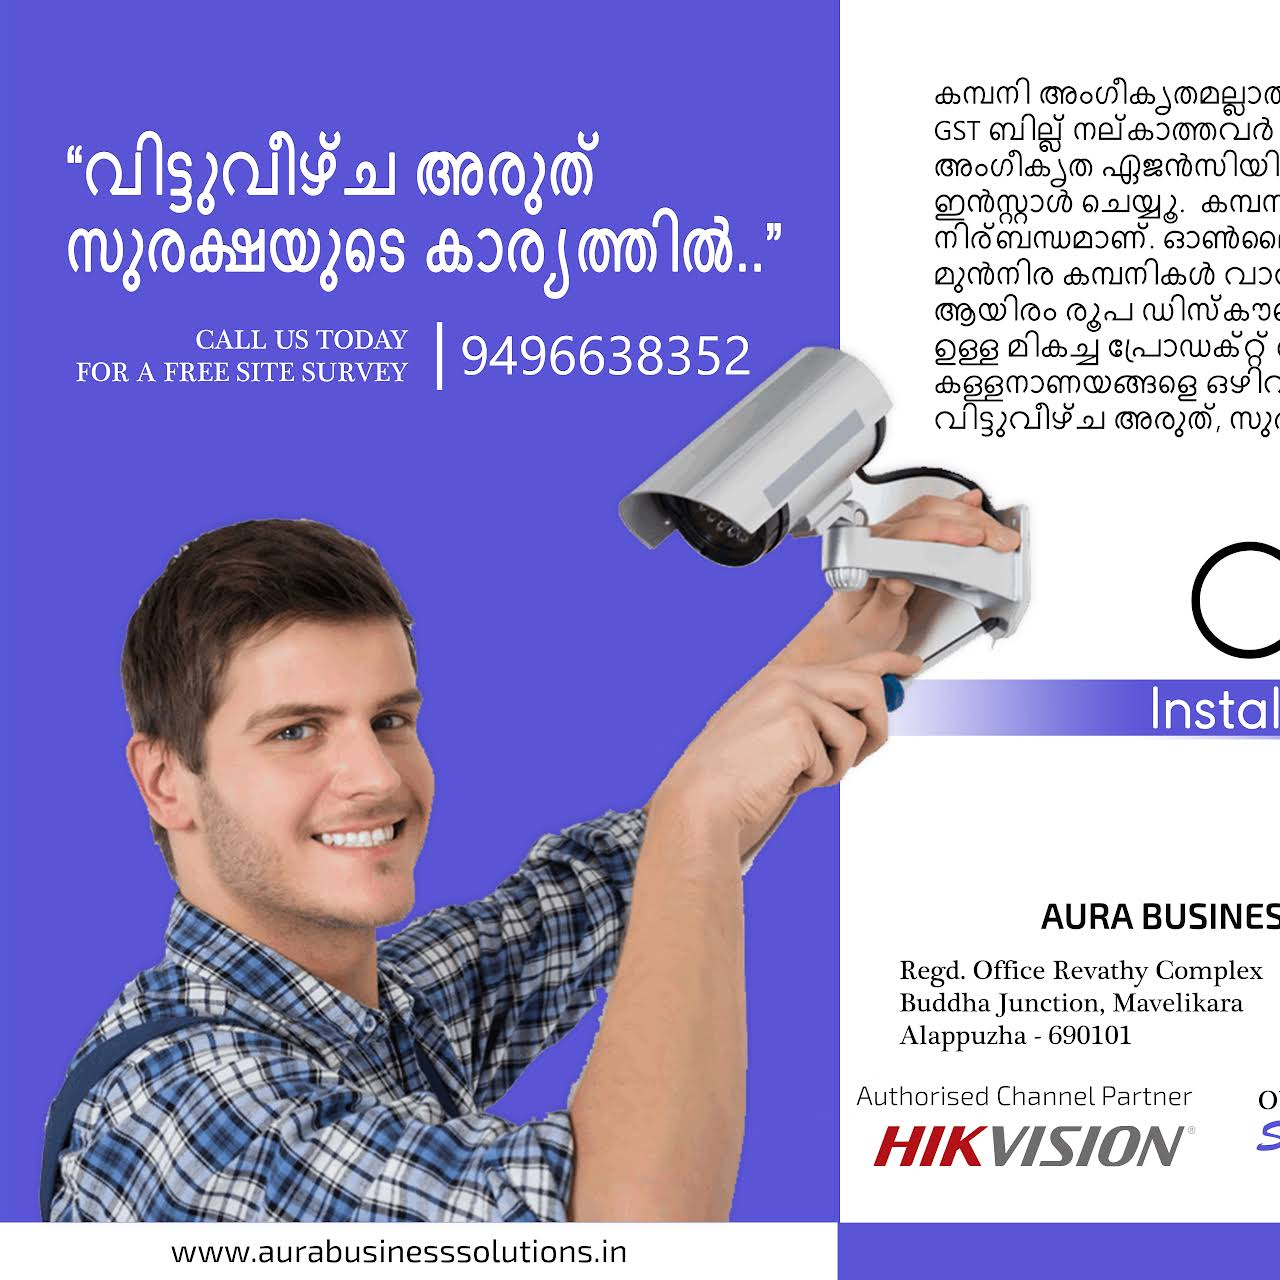 Aura Business Solutions - CCTV, Security Systems Dealer in Kerala